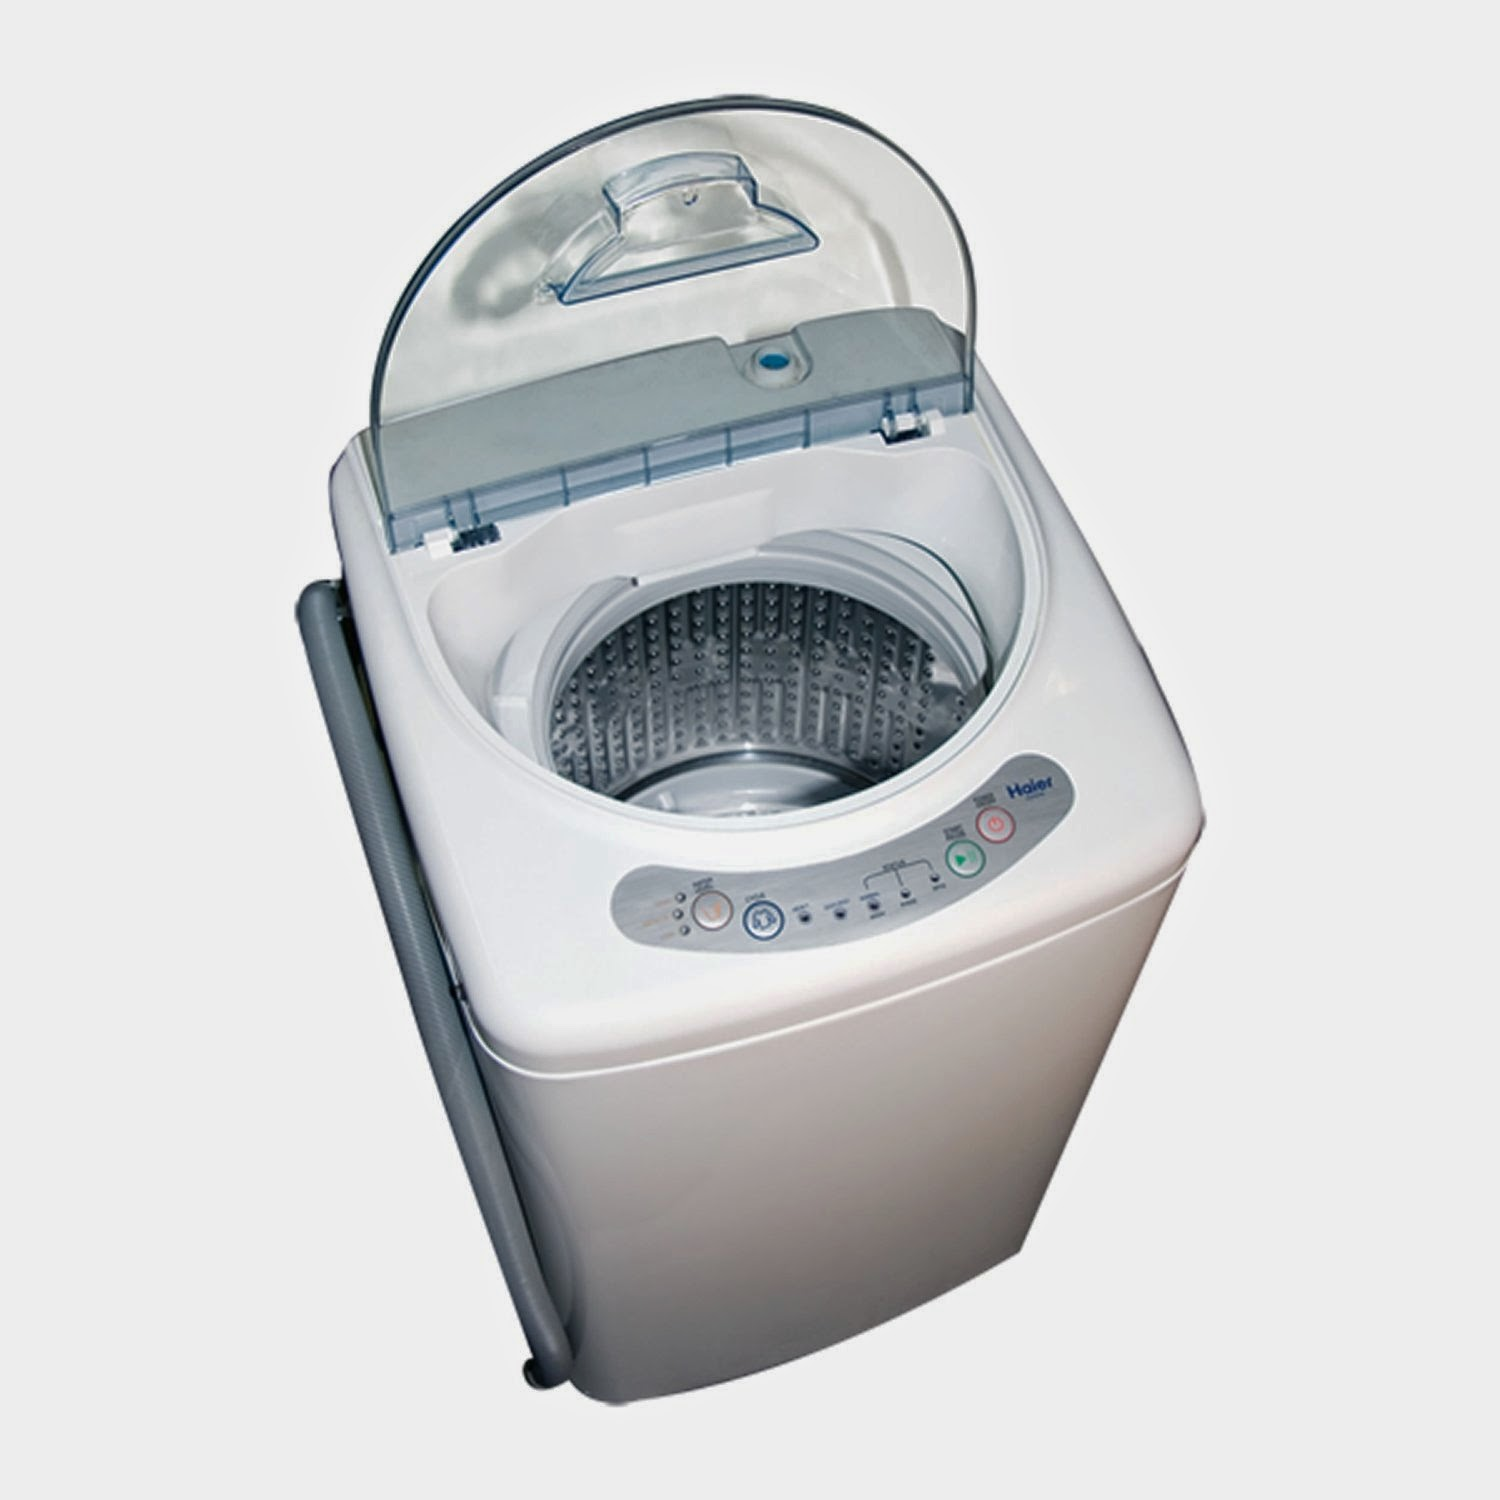 Lg all in one washer and dryer reviews - Haier Hlp21n Pulsator 1 Cf Portable Washer